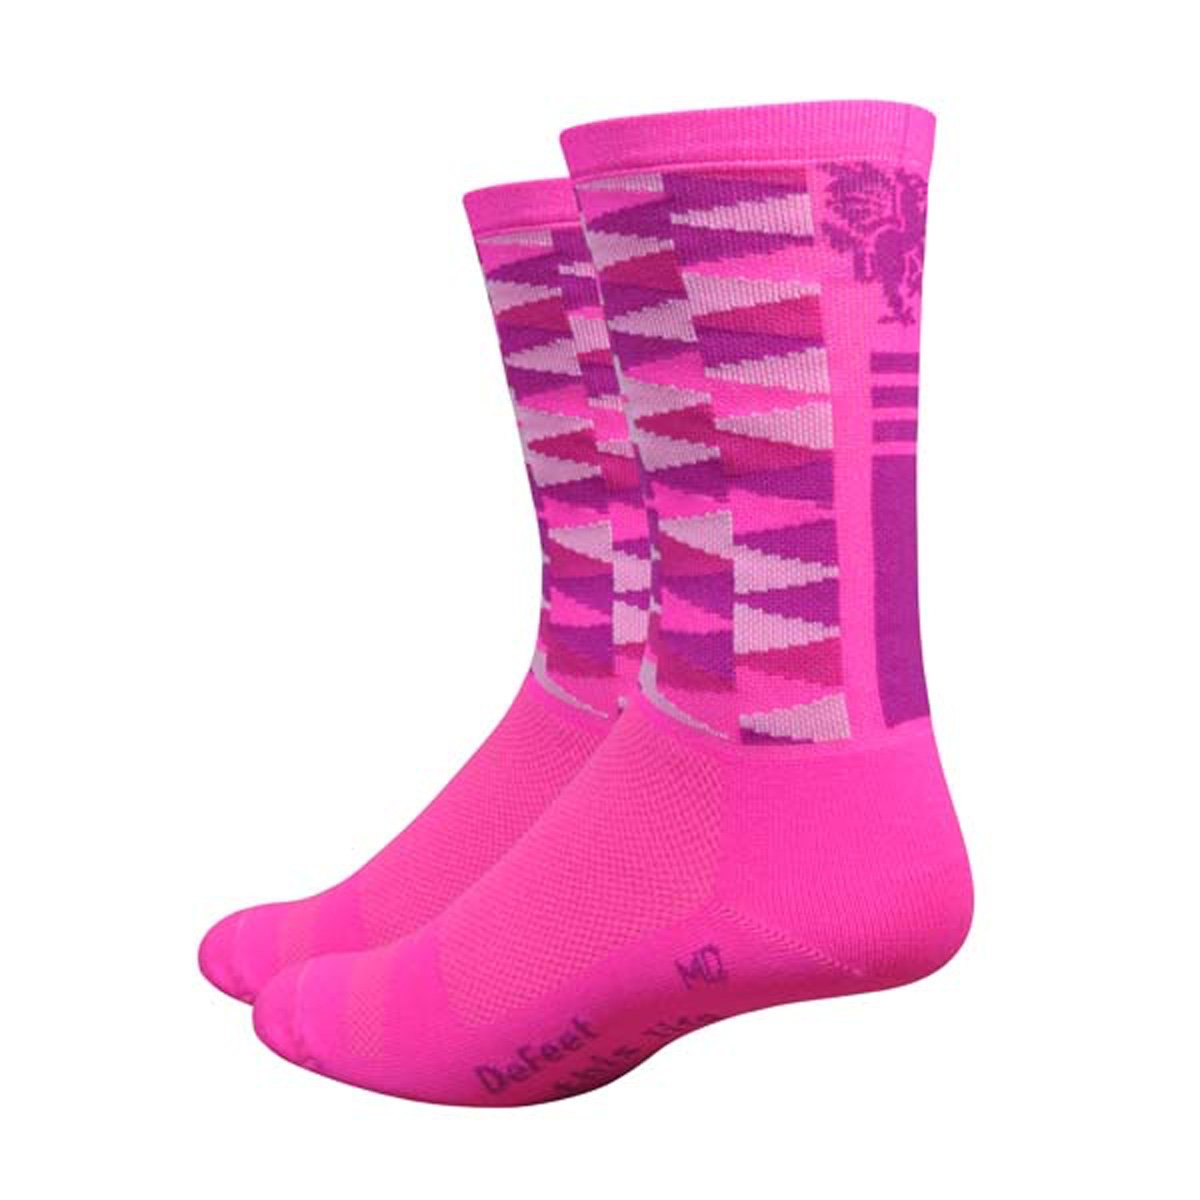 DeFeet Aireator 6inch Mad Alchemy Candy Crush Cycling/Running Socks